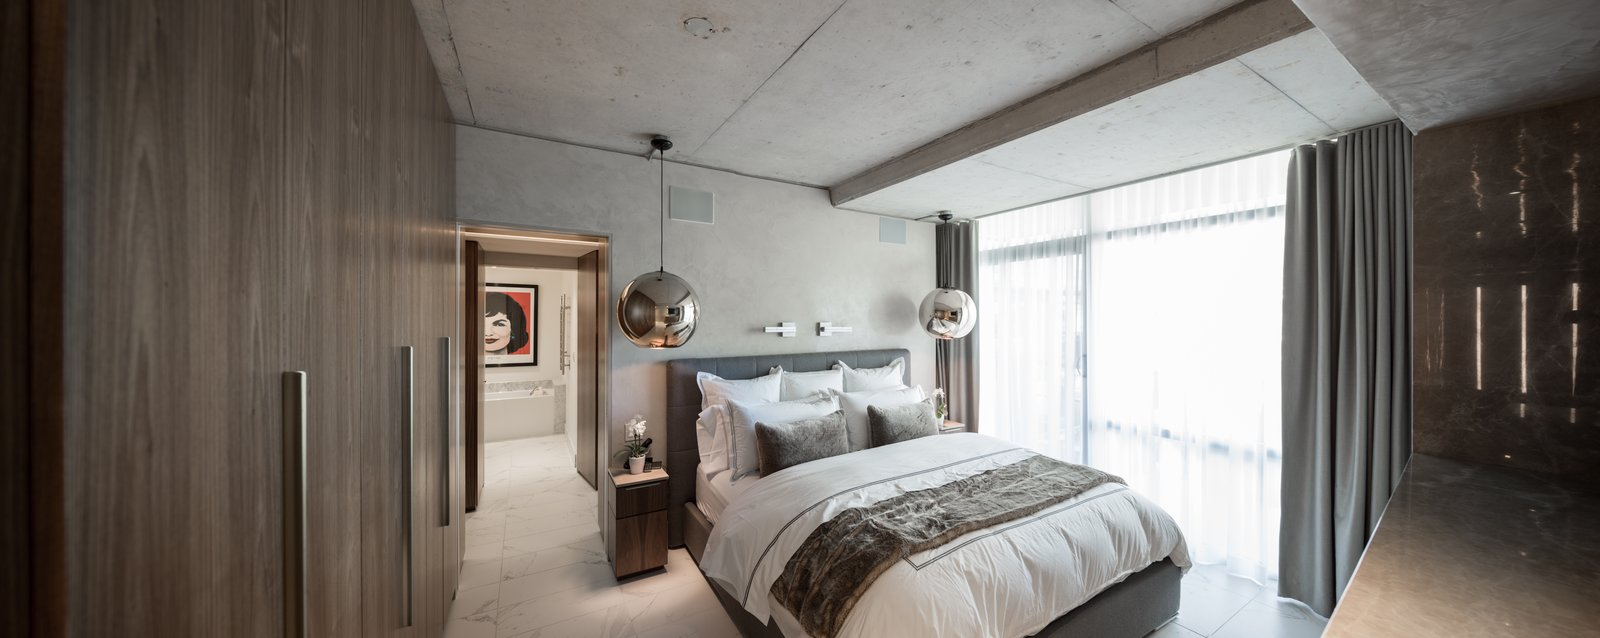 The Master Suite Bedroom.  Thompson Hotel Private Suite by ANTHONY PROVENZANO ARCHITECTS